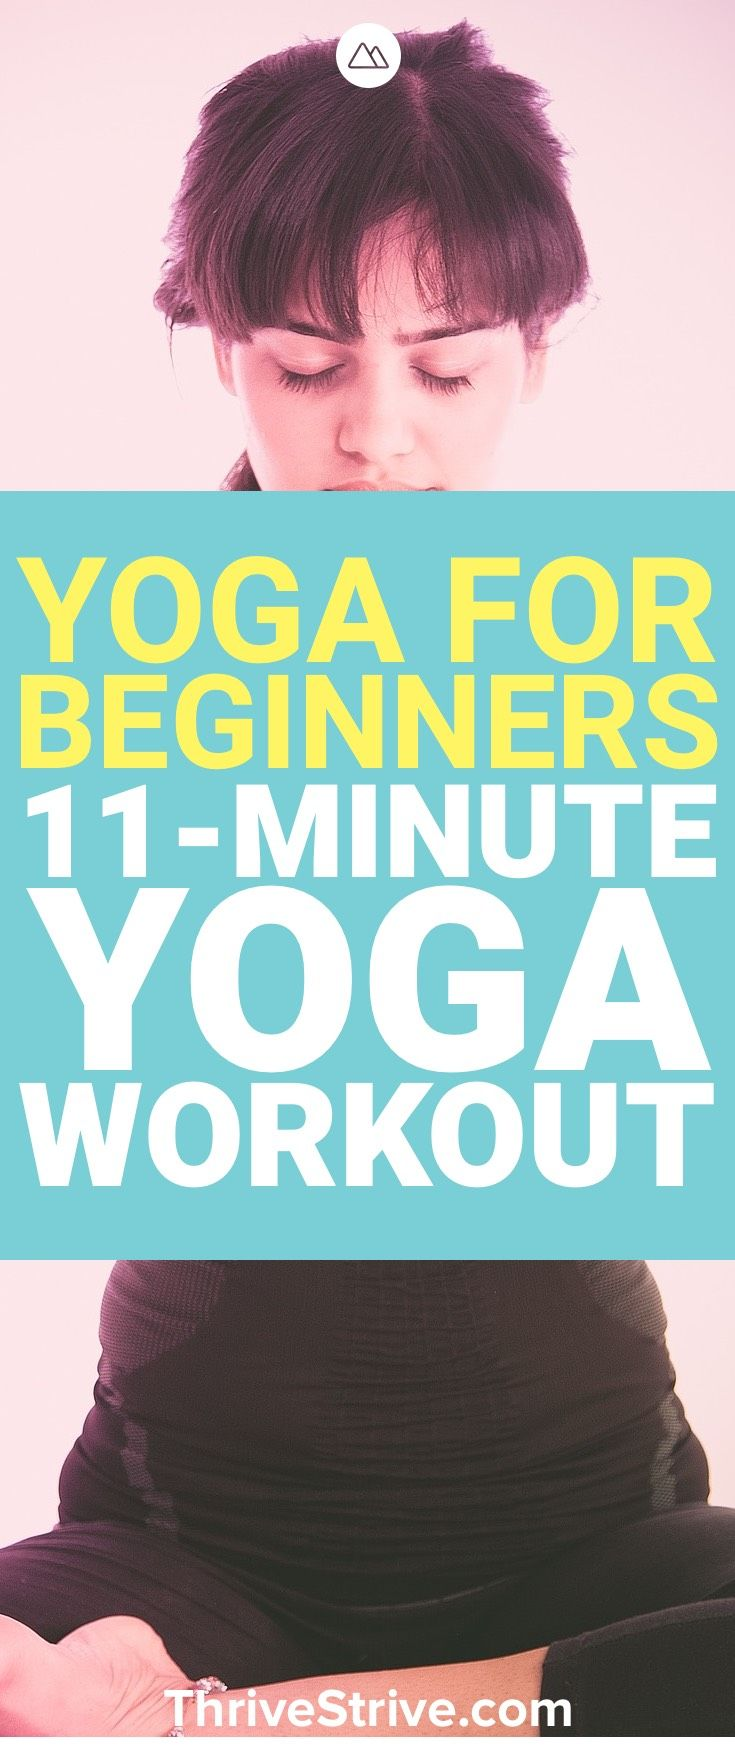 Ready to get started with yoga? This yoga for beginners workout is just the thin...